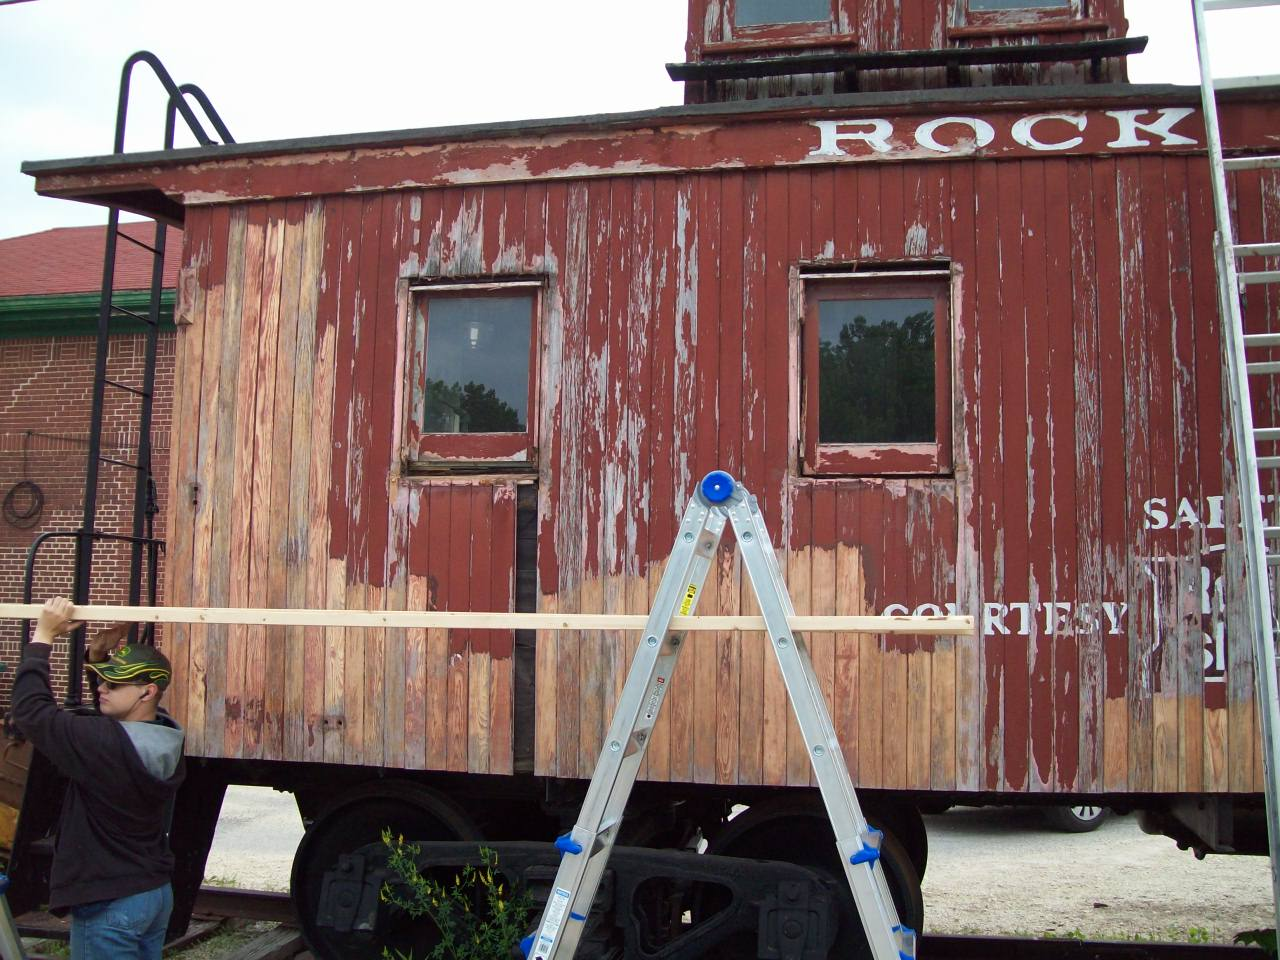 The following photos were taken on June 11, 2009, and show a lot of the hard work and dedication that goes into preserving historic equipment such as this. Chris Parrish sets-up scaffolding as work on the caboose progresses.